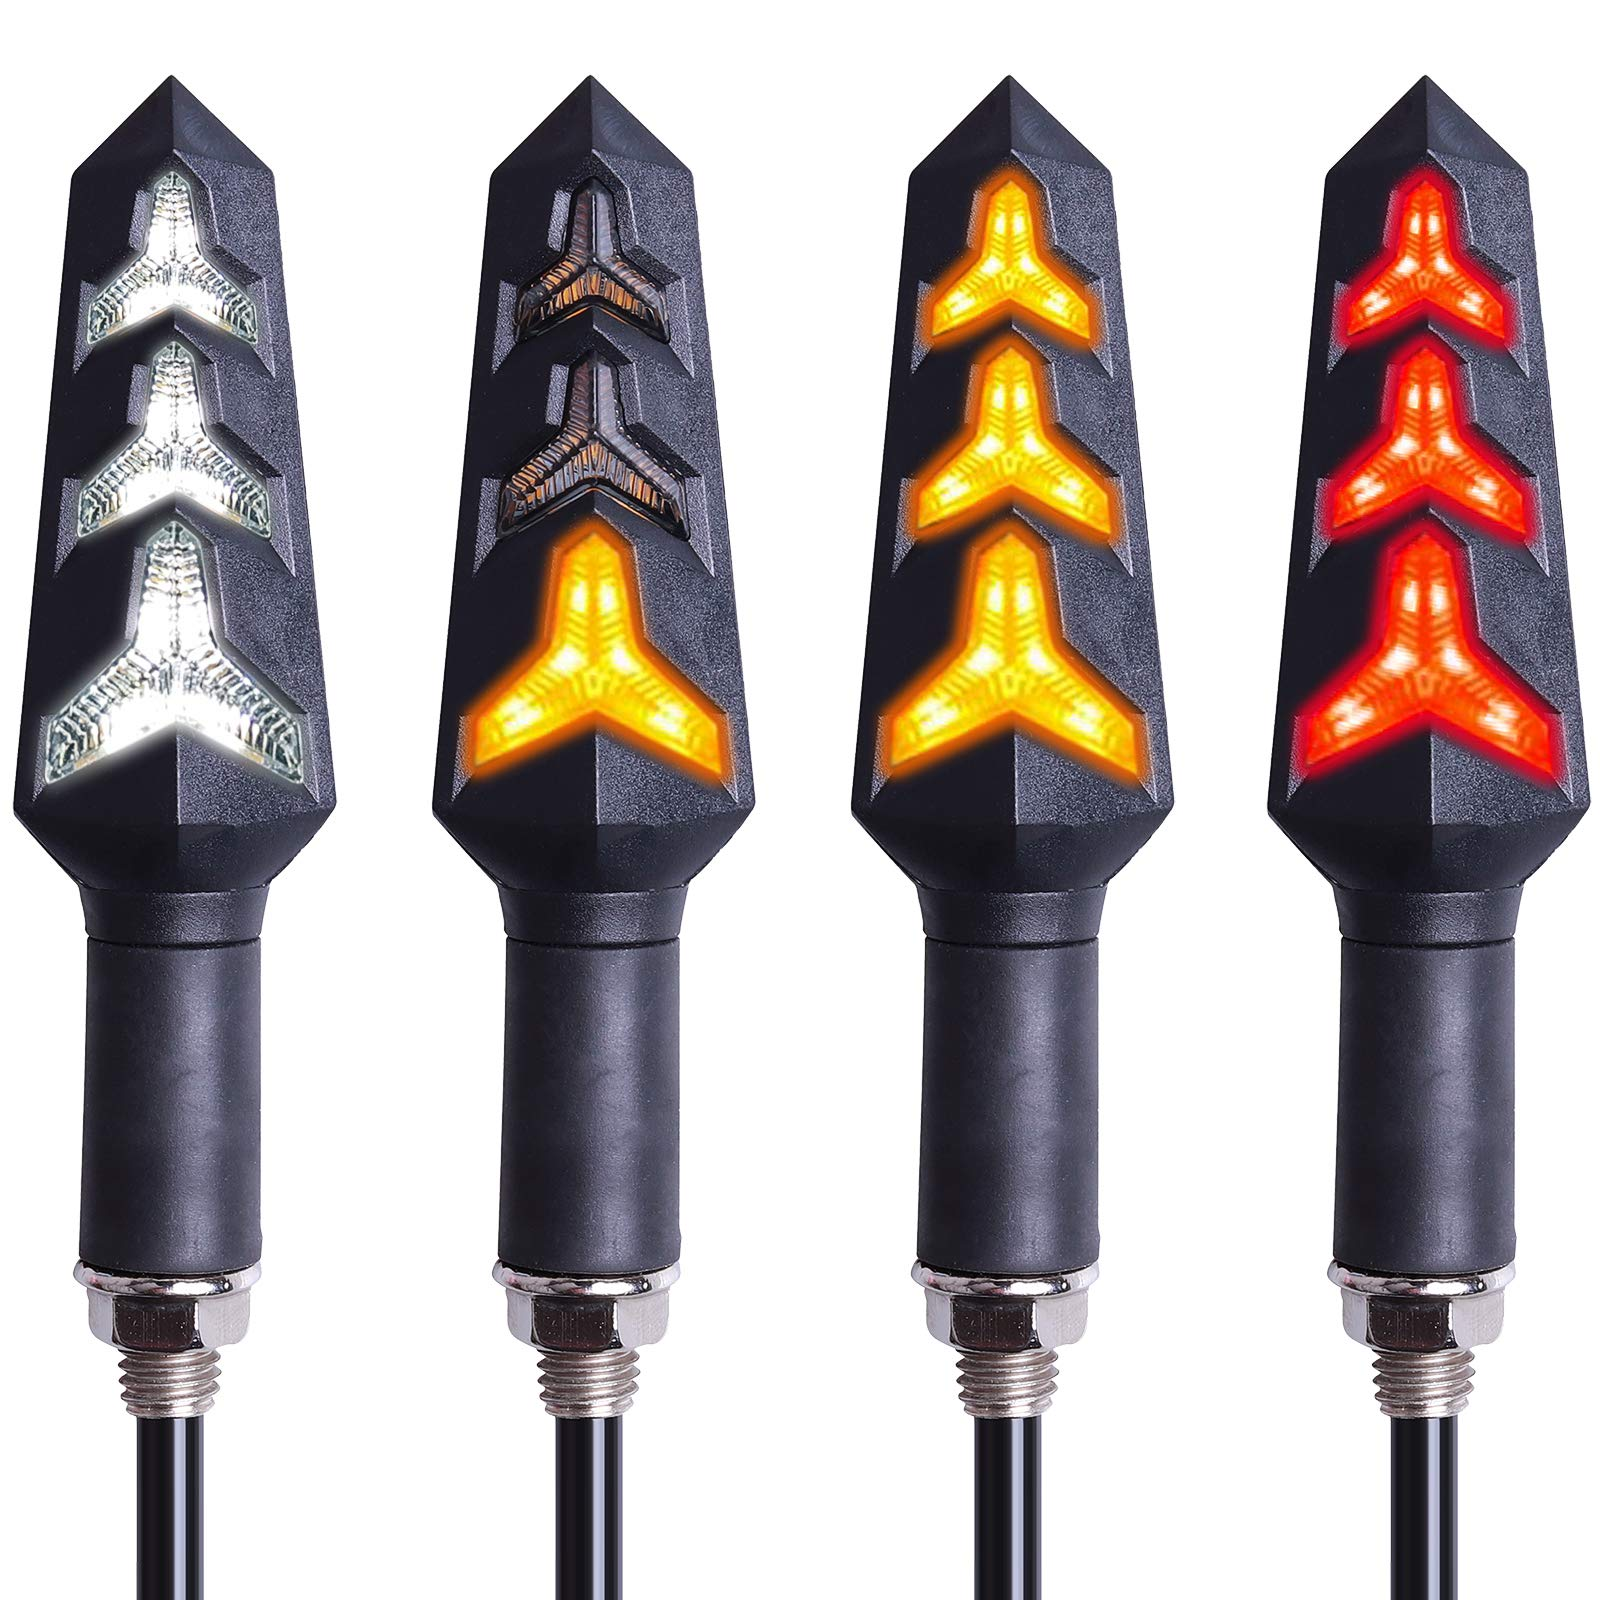 Justech 4PCS Motorcycle Indicators Amber Bullet-Shaped Motorbike Turn Signal Lights Blinker Lights Front Rear Lights Universal for Motorcycle Scooter Quad Off Road